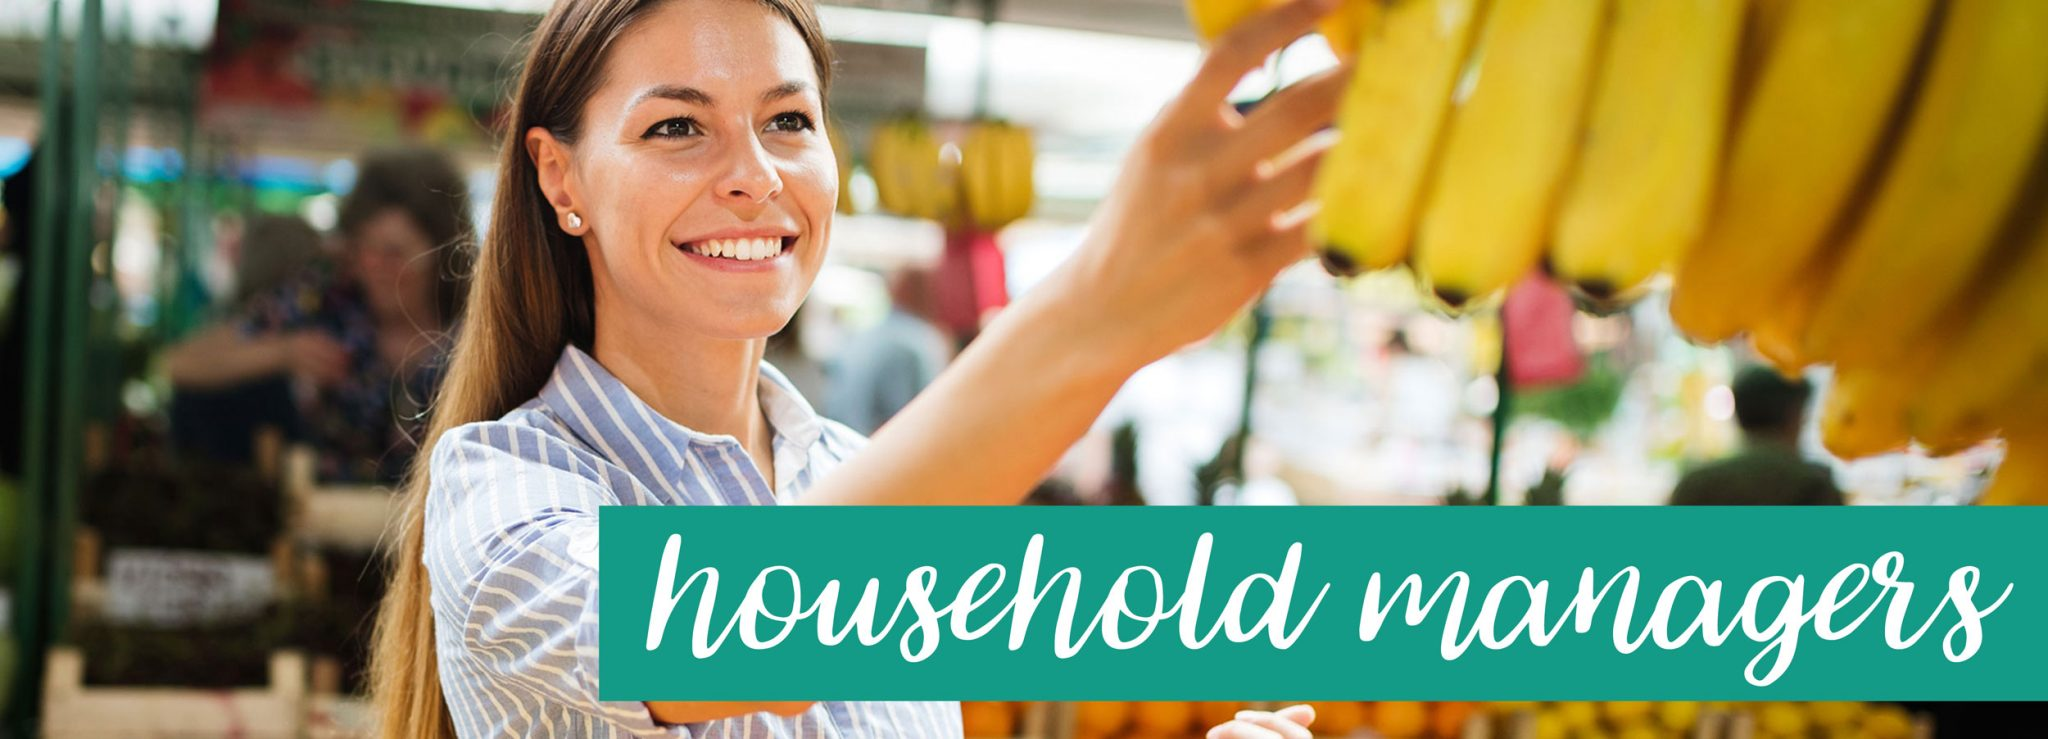 Household Manager placement services from Capitol Park Nannies, Sacramento-based Nanny Agency